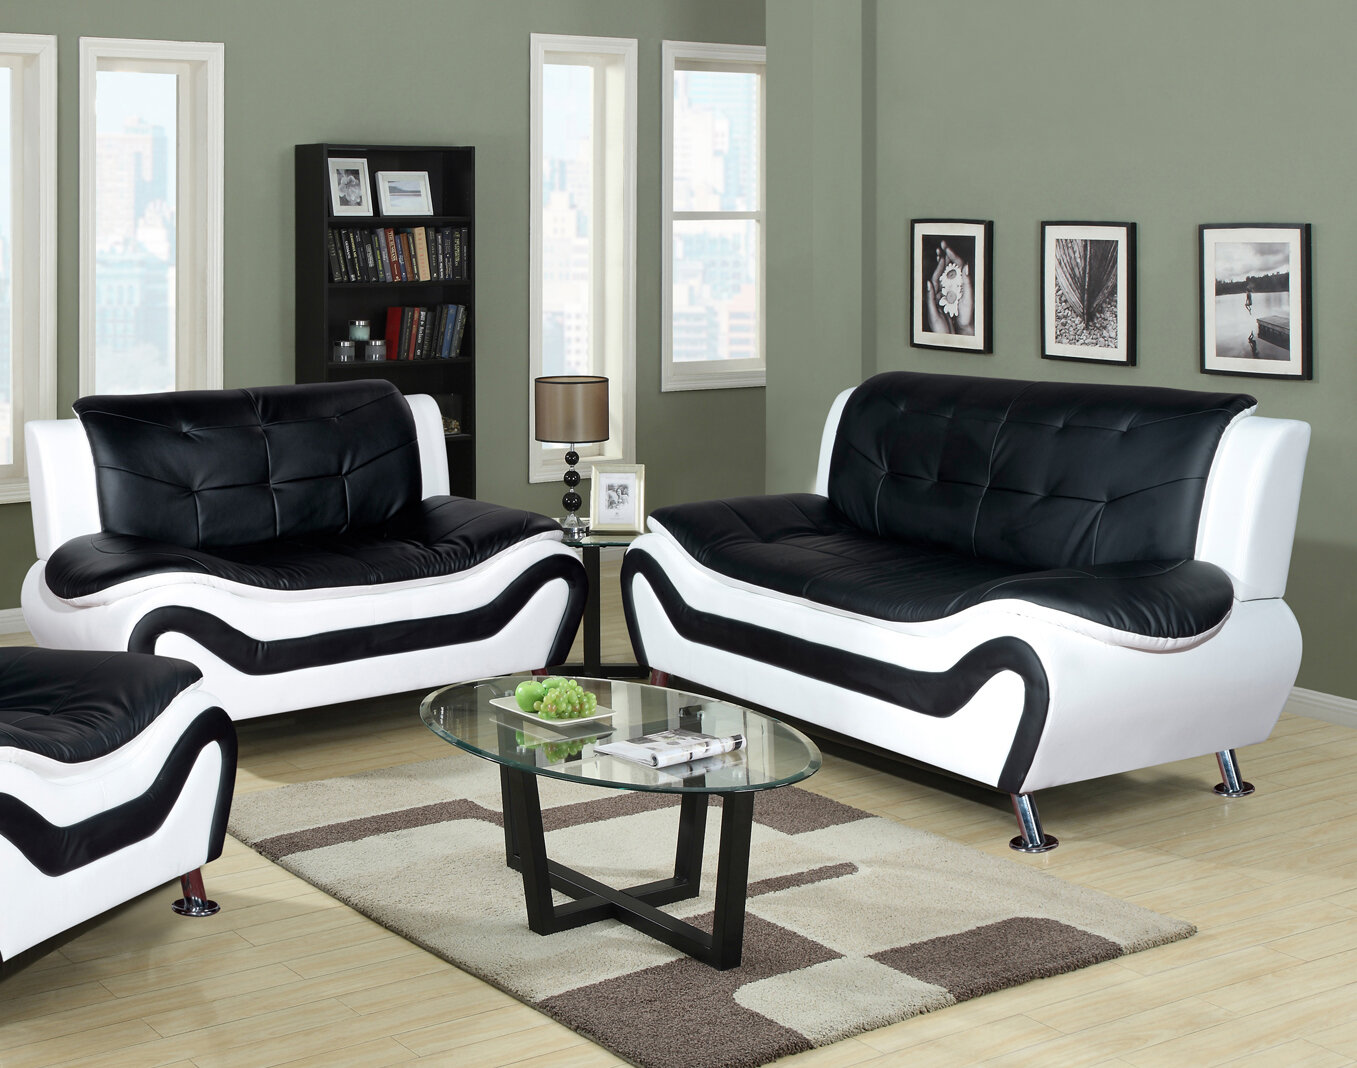 traditional sofas with sectional living style leather to click high room resolution image livings here view furniture